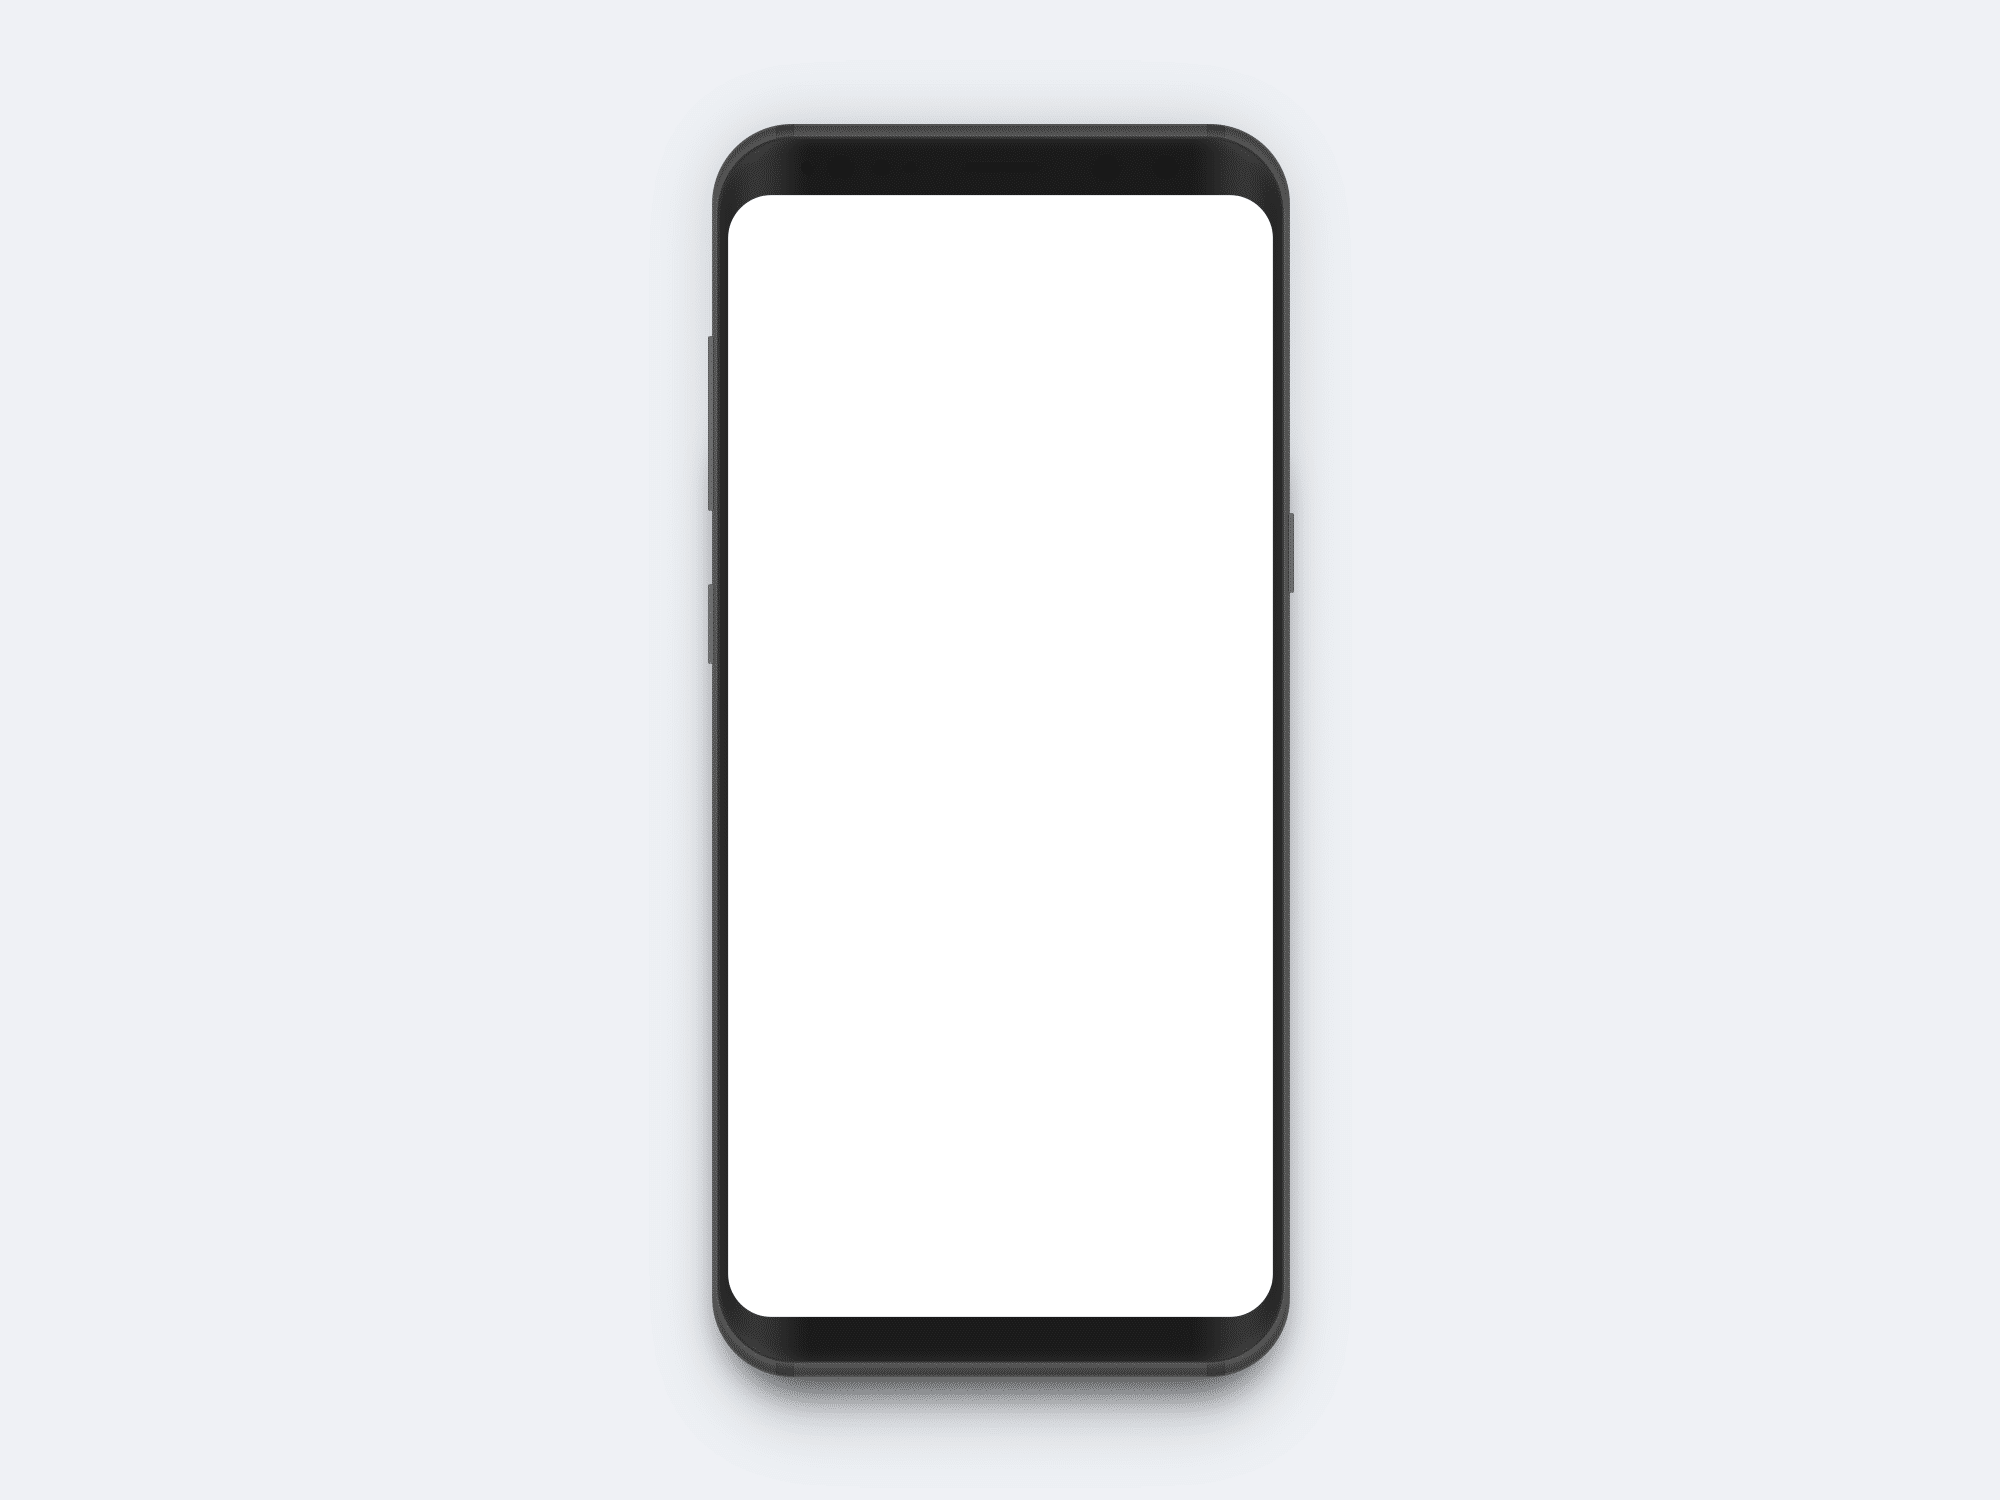 Samsung Galaxy S8 Mockup The Mockup Club